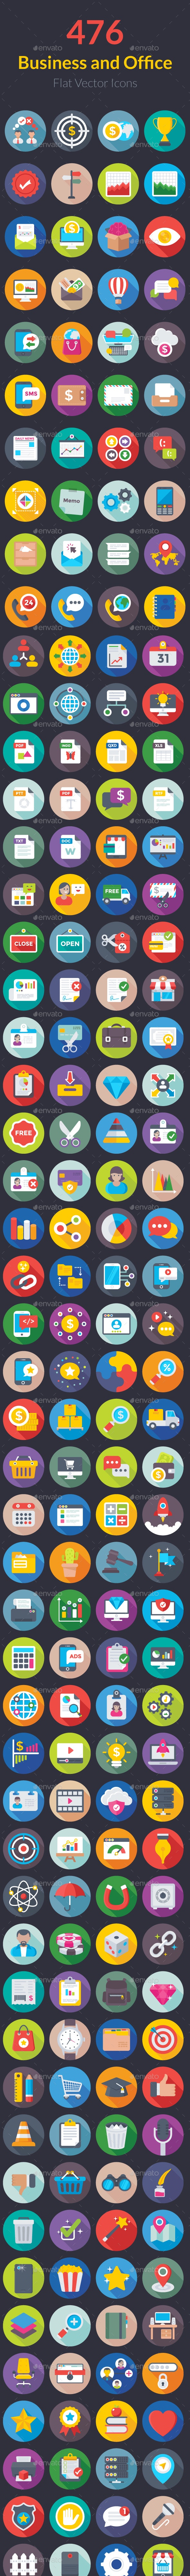 476 Business and Office Flat Icons - Icons